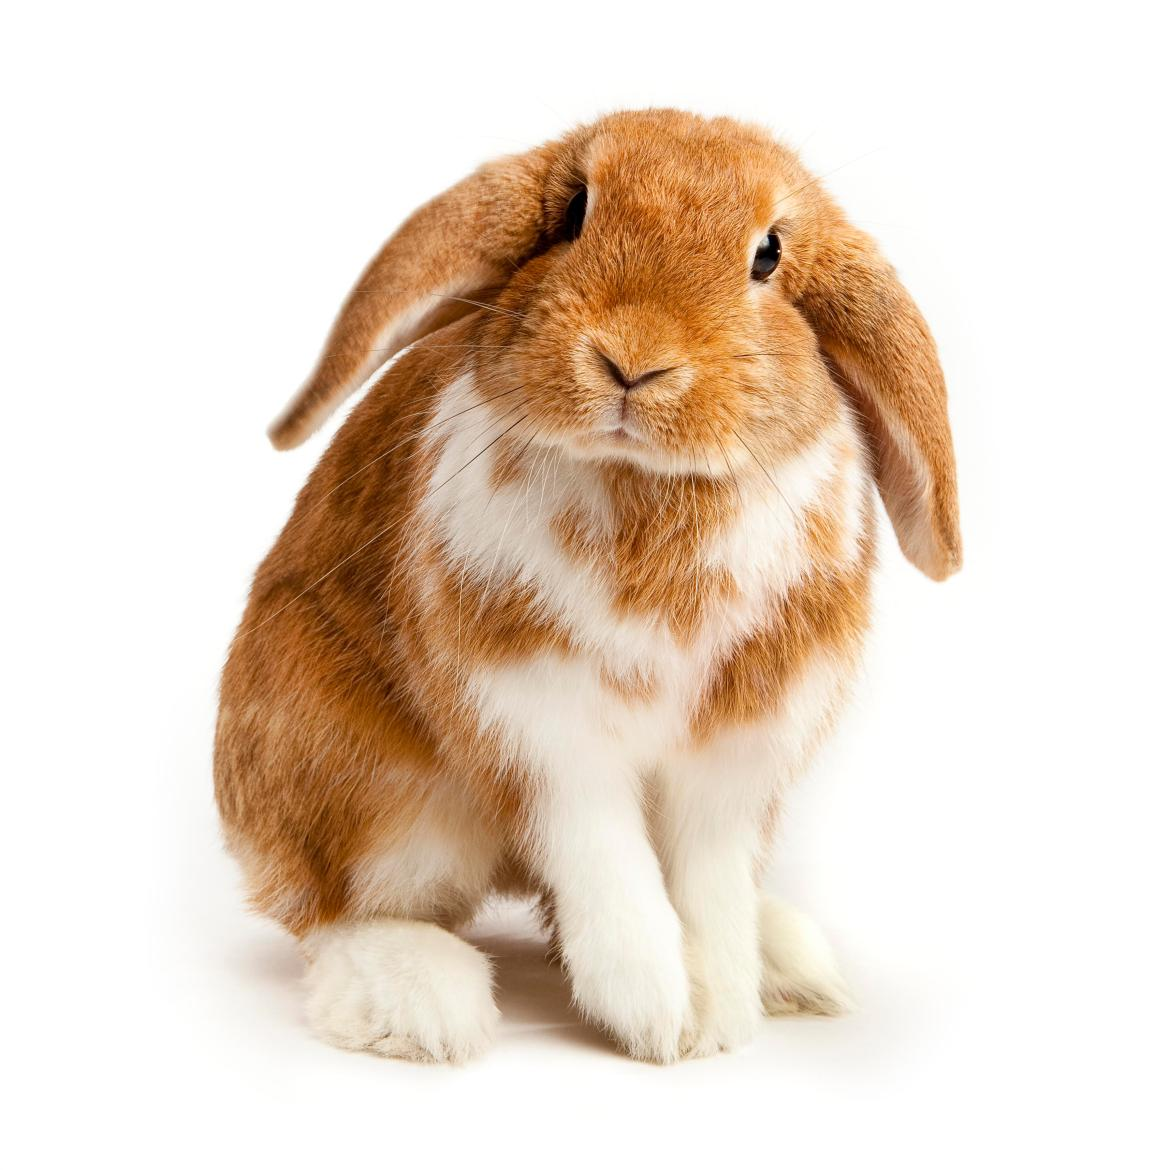 Rabbit owners are advised to have their pets vaccinated as soon as possible